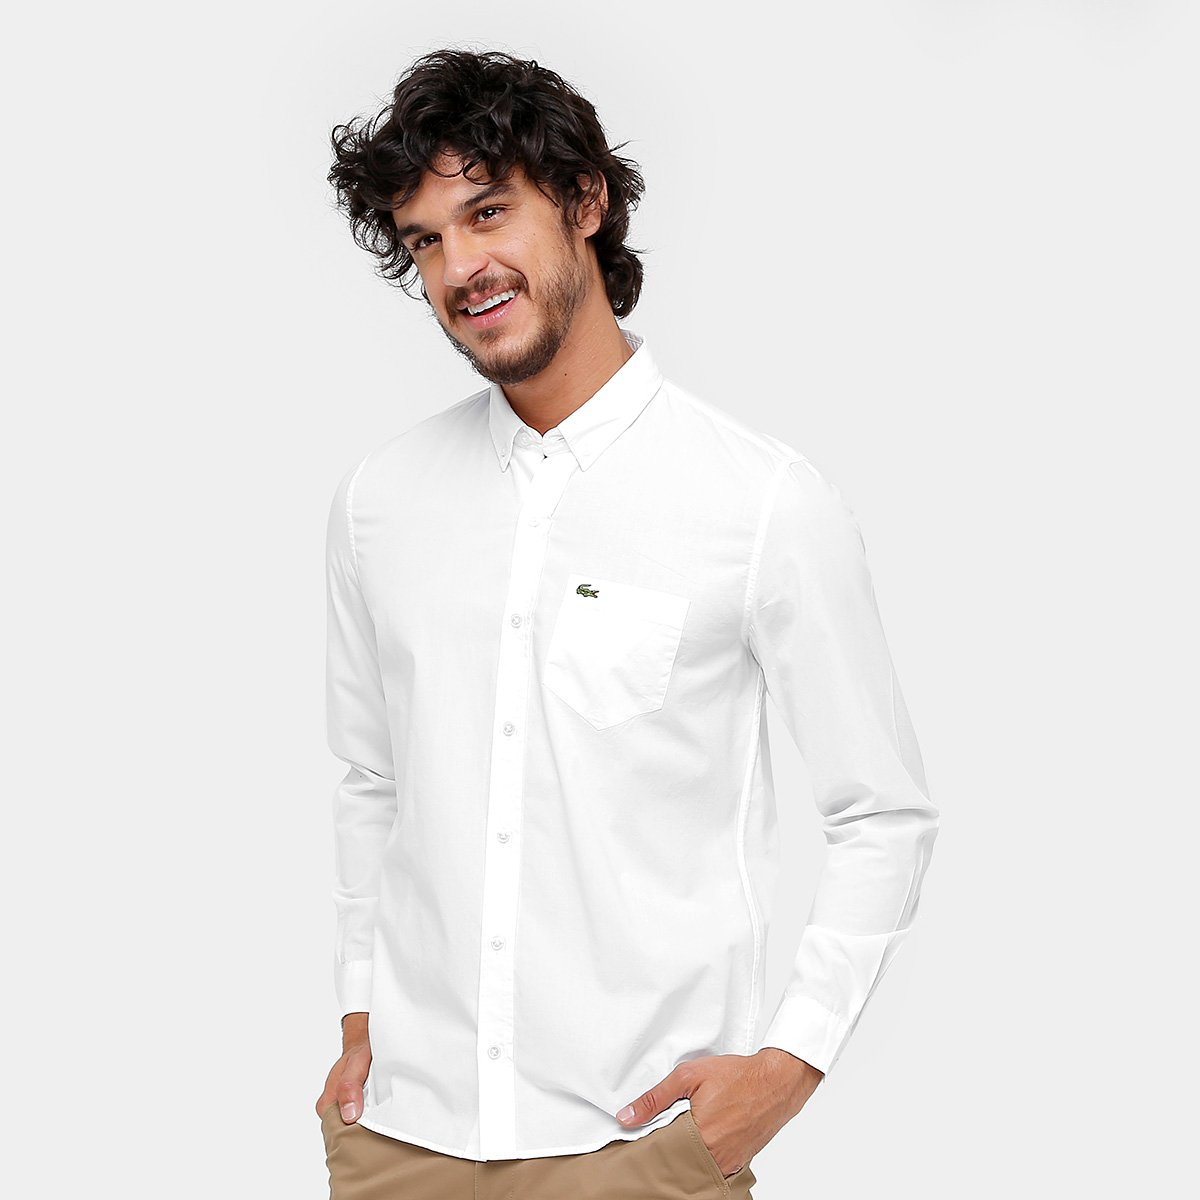 Camisa Social Lacoste Regular Fit Bolso Masculina - Compre Agora ... 62f4937a0f